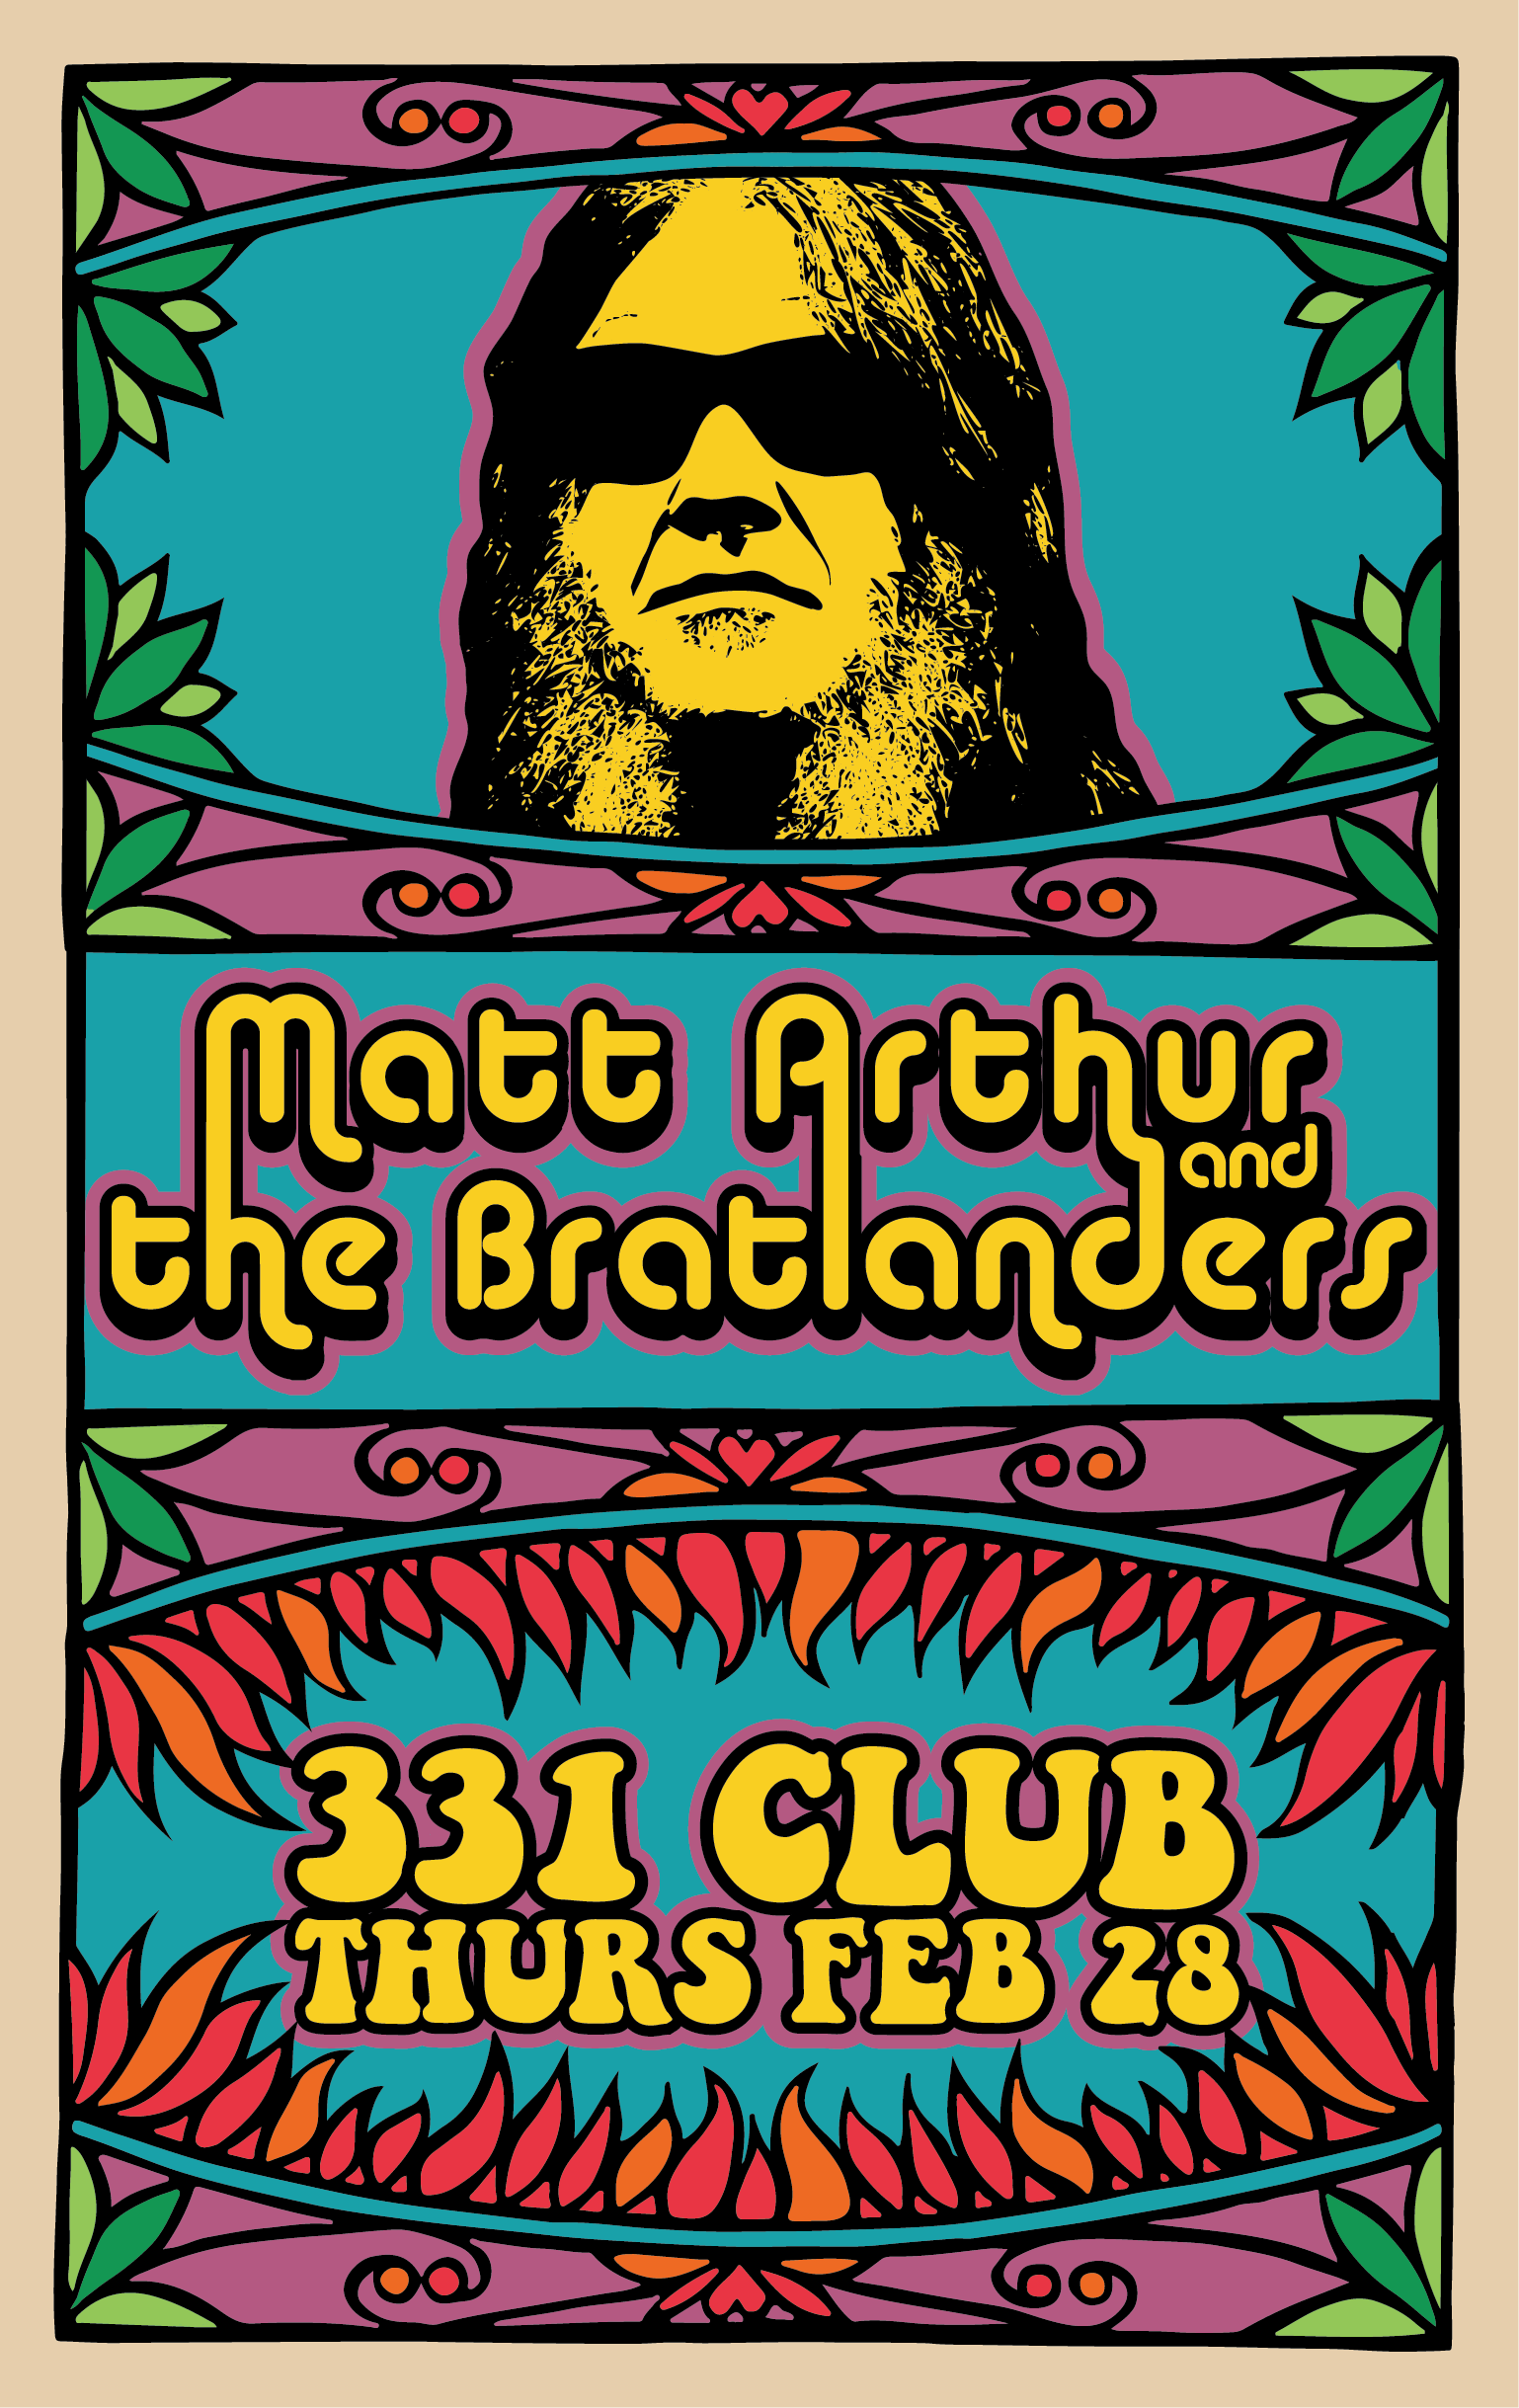 Psychedelic poster promoting Bratlanders at the 331 Club, Thurs. Feb. 28